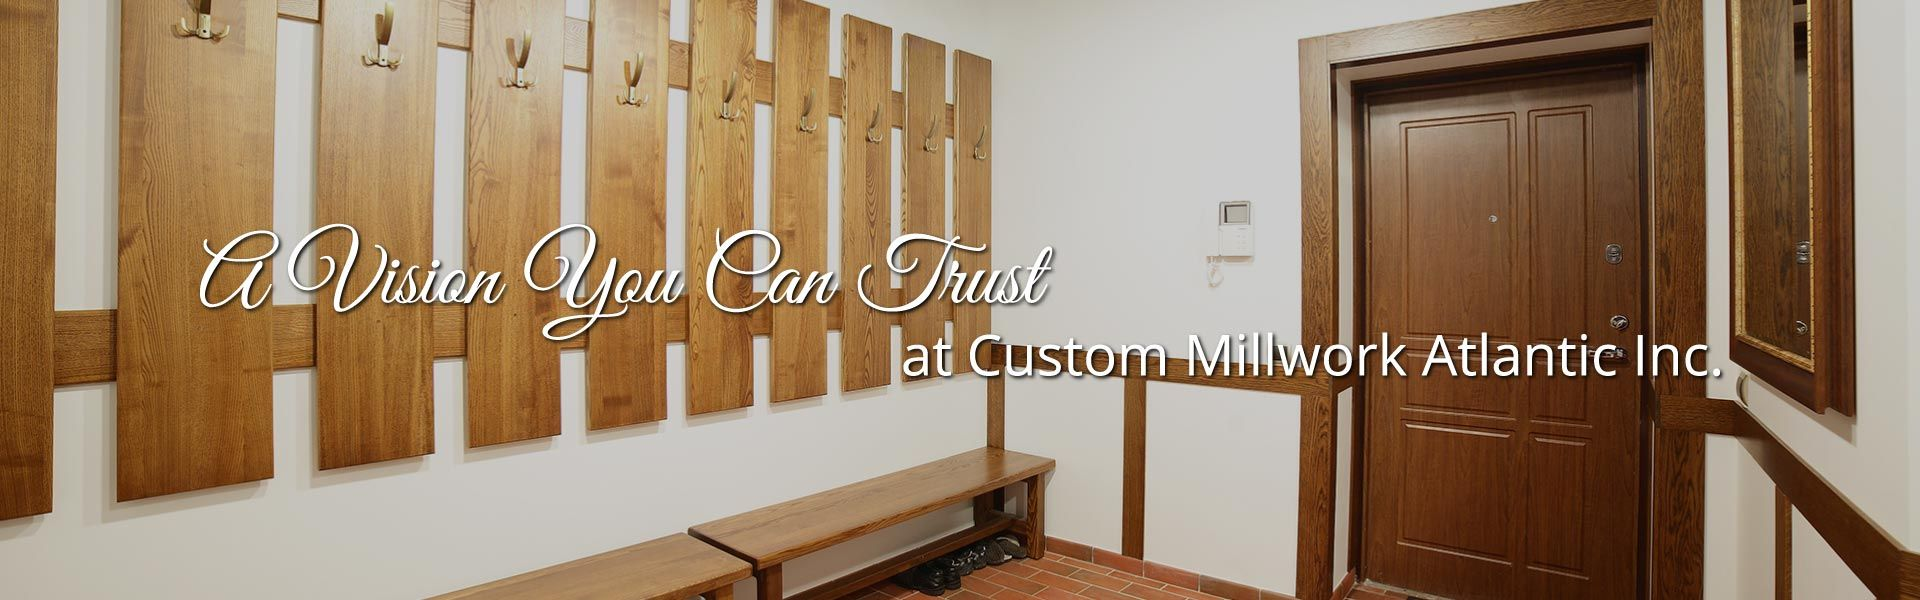 A Vision You Can Trust at Custom Millwork Atlantic Inc. | house entry way